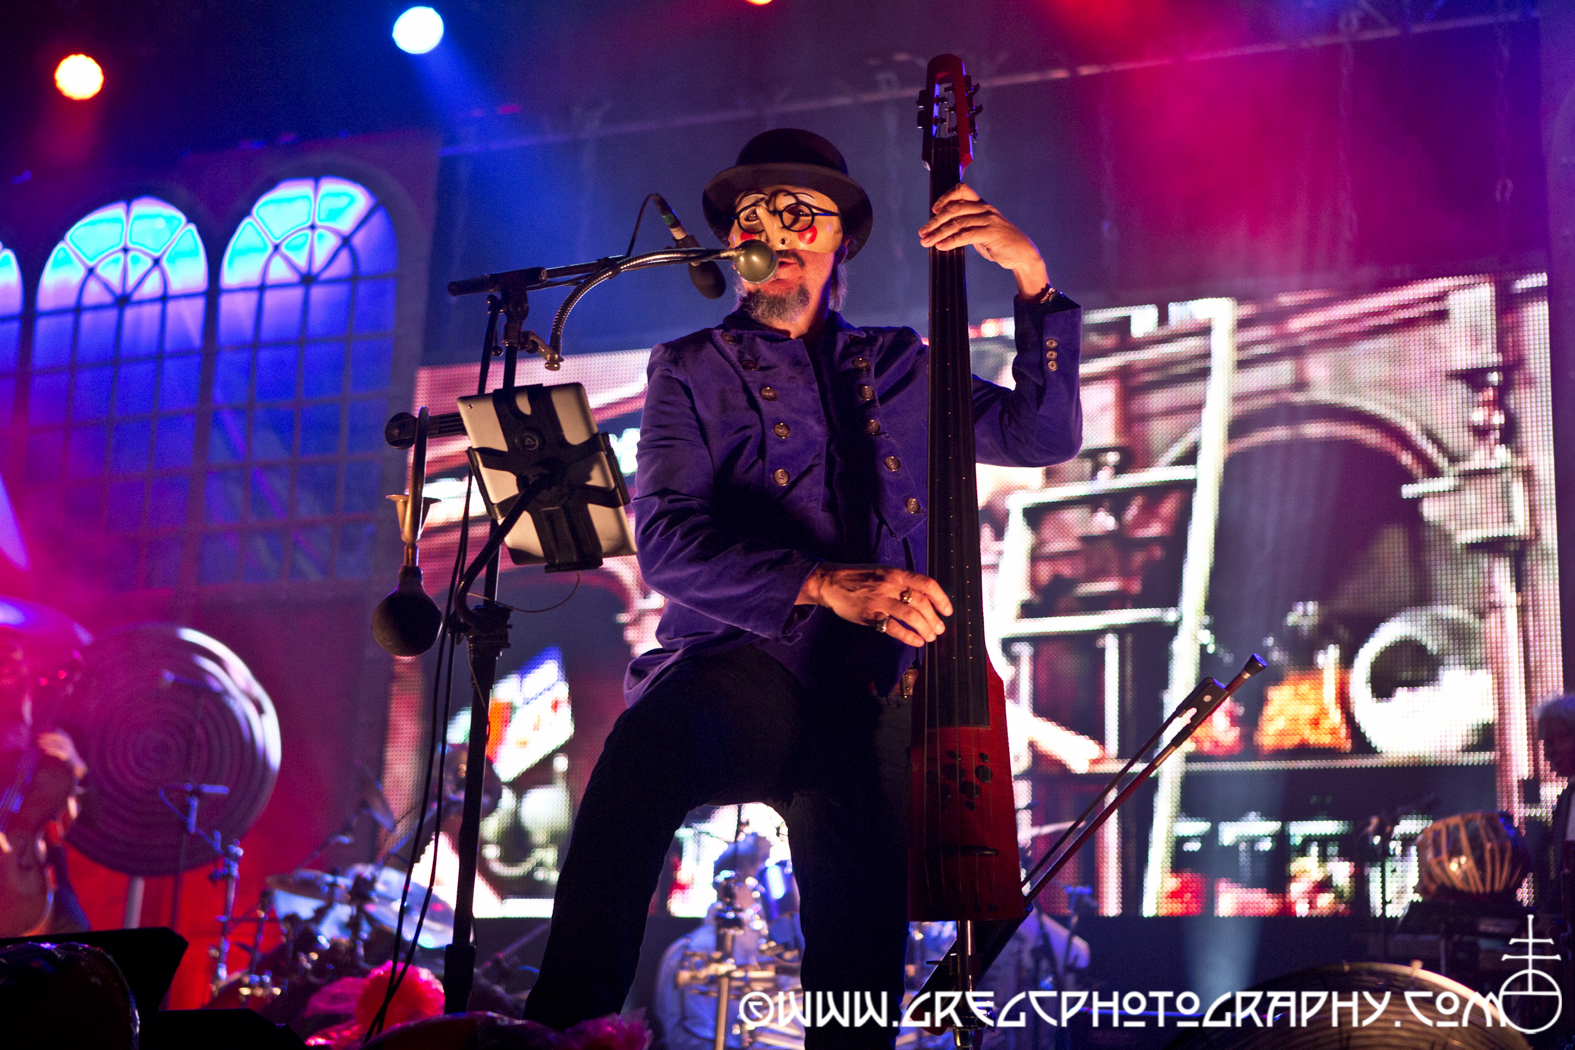 Primus and The Chocolate Factory featuring The Fungi Ensemble_06_20150425